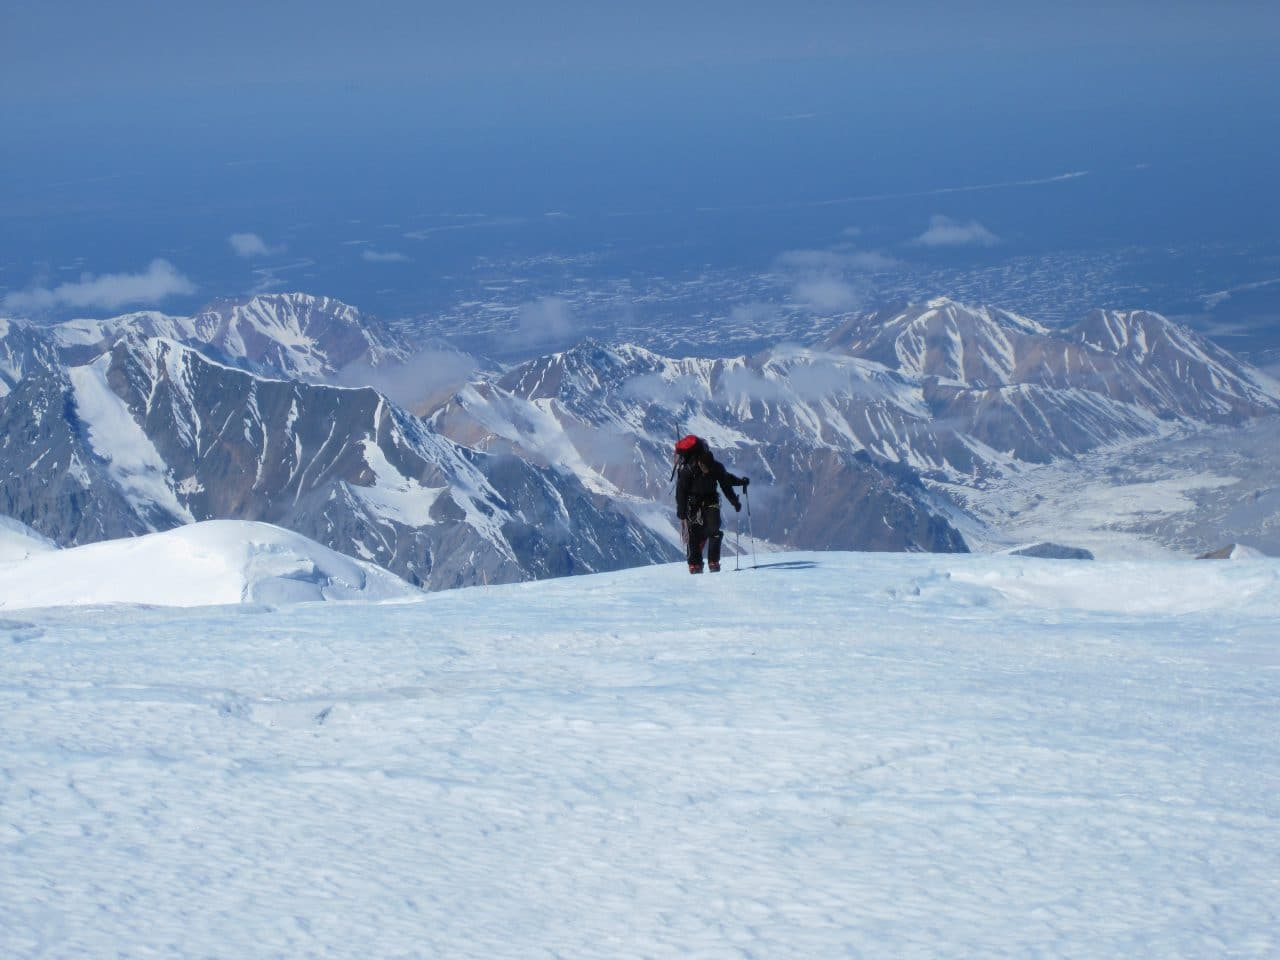 Helyum_Xavier-Carrard_Guide-de-montagne_Expedition_Alaska_Denali_Philippe-Mailhot_Windy-Corner